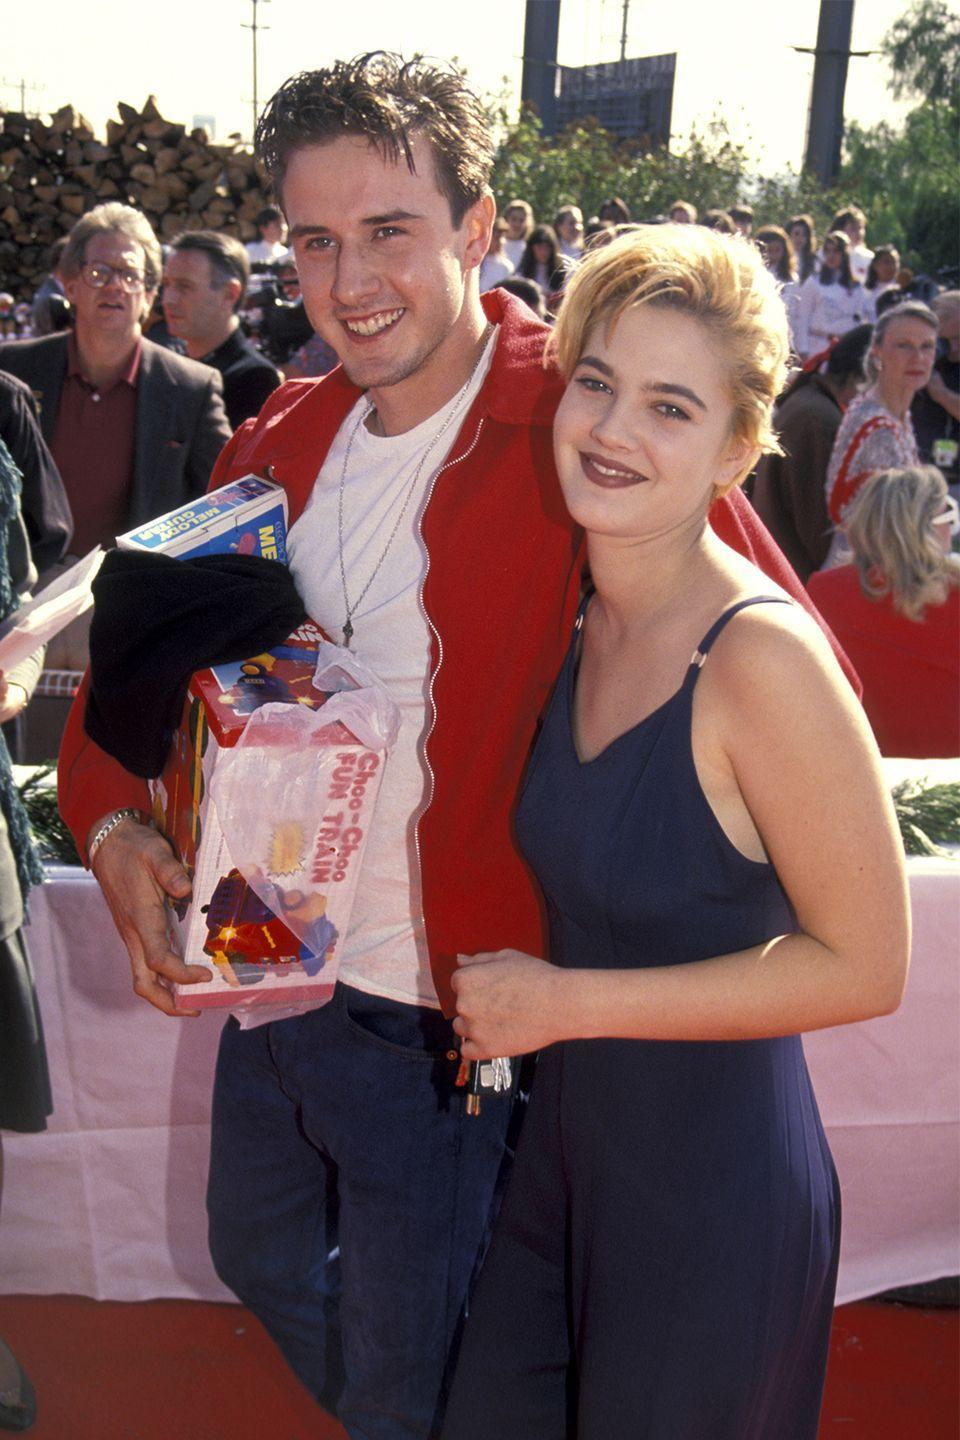 """<p>The <em>Never Been Kissed </em>brother and sister co-stars had a very different relationship off-camera. Though Barrymore denies it, Arquette said they used to date—long before they starred in the movie together. """"We also dated, but she denied it on Howard Stern,"""" <a href=""""http://ew.com/tv/2018/03/15/david-arquette-says-he-dated-drew-barrymore/"""" rel=""""nofollow noopener"""" target=""""_blank"""" data-ylk=""""slk:Arquette said"""" class=""""link rapid-noclick-resp"""">Arquette said</a> in an episode of<em> PeopleTV</em>'s <em>Couch Surfing</em>. """"But, we dated, Drew!""""</p>"""